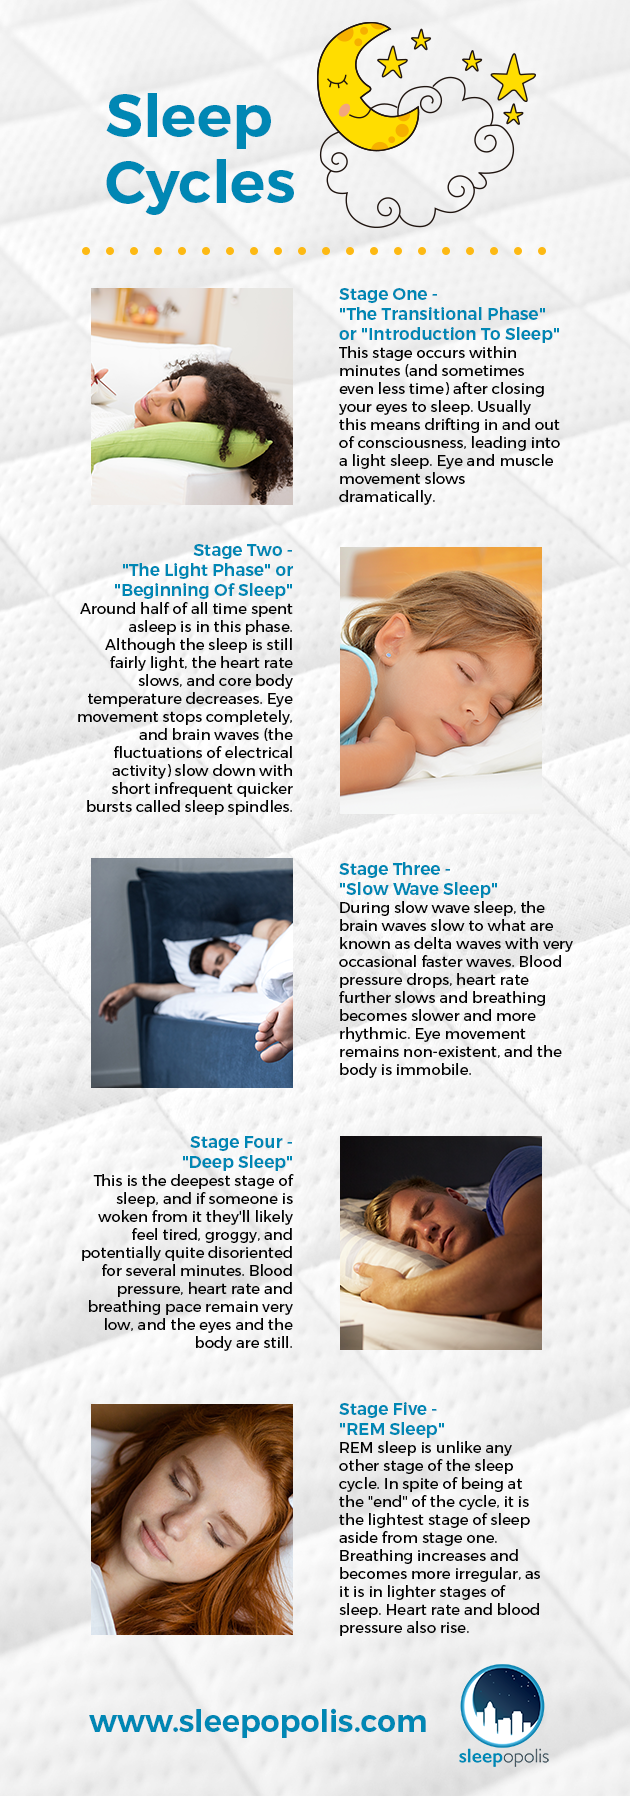 An infographic outlining the stages of sleep